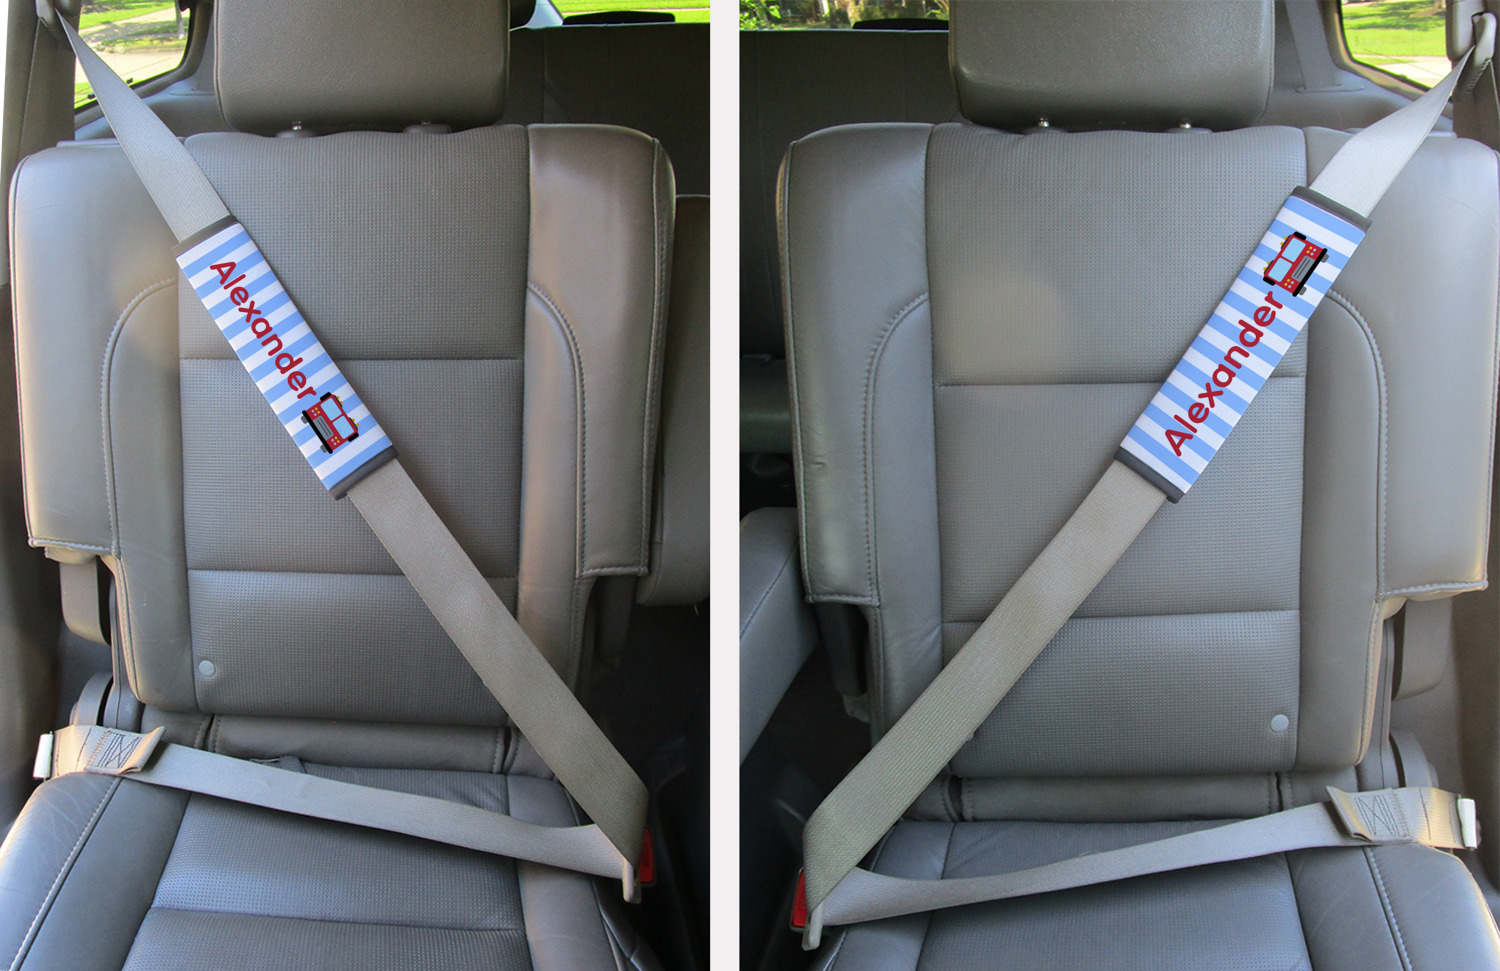 Firetruck Seat Belt Covers (Set of 2) (Personalized)